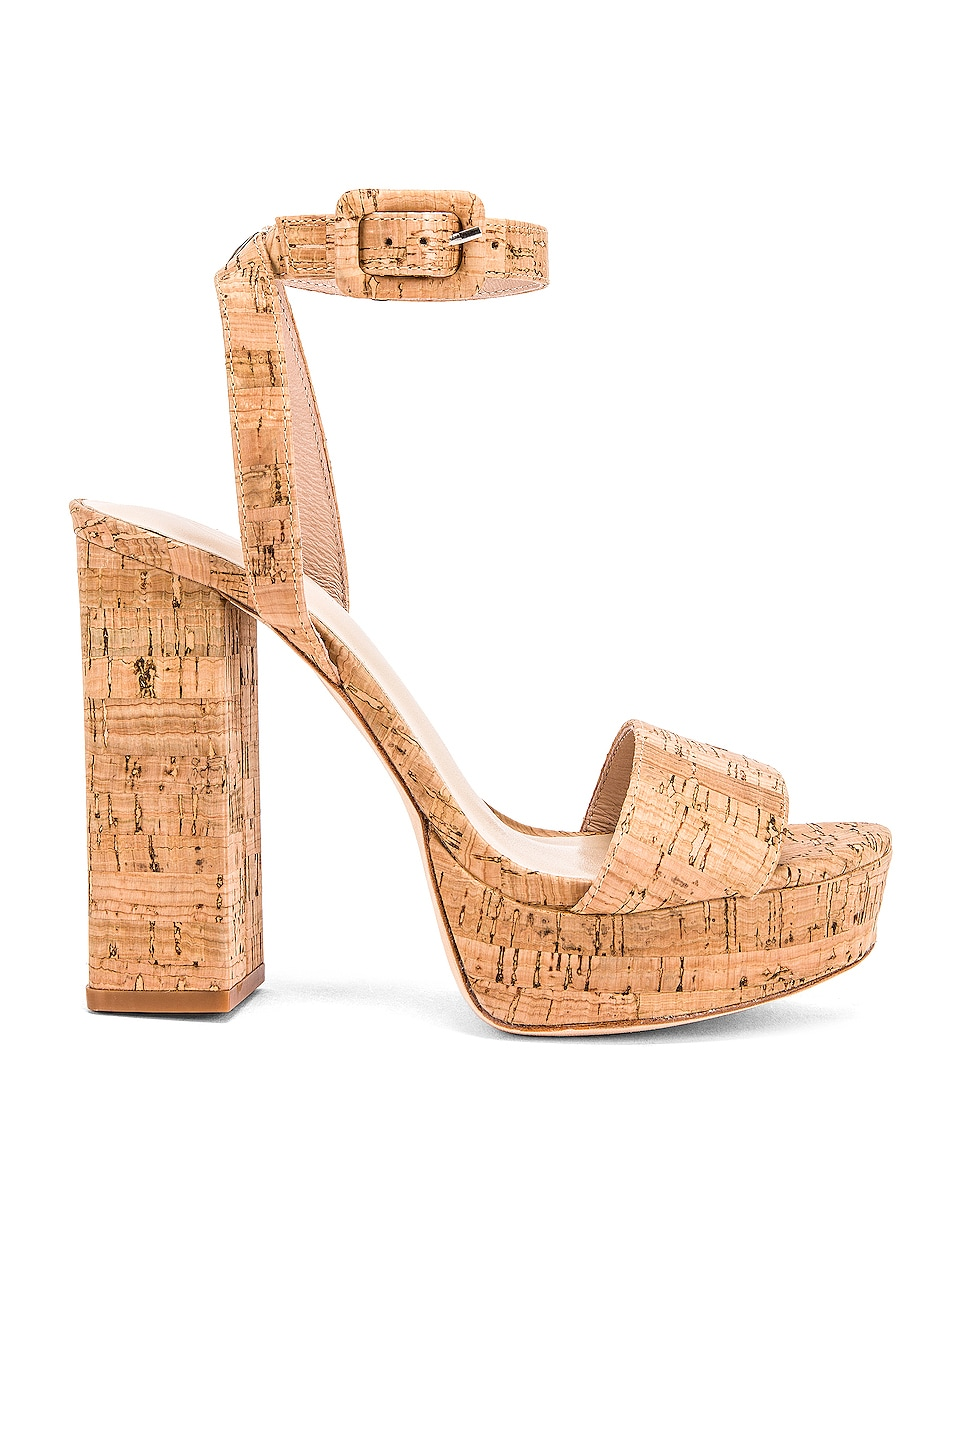 House of Harlow 1960 X REVOLVE Mika Platform Heel in Natural Cork